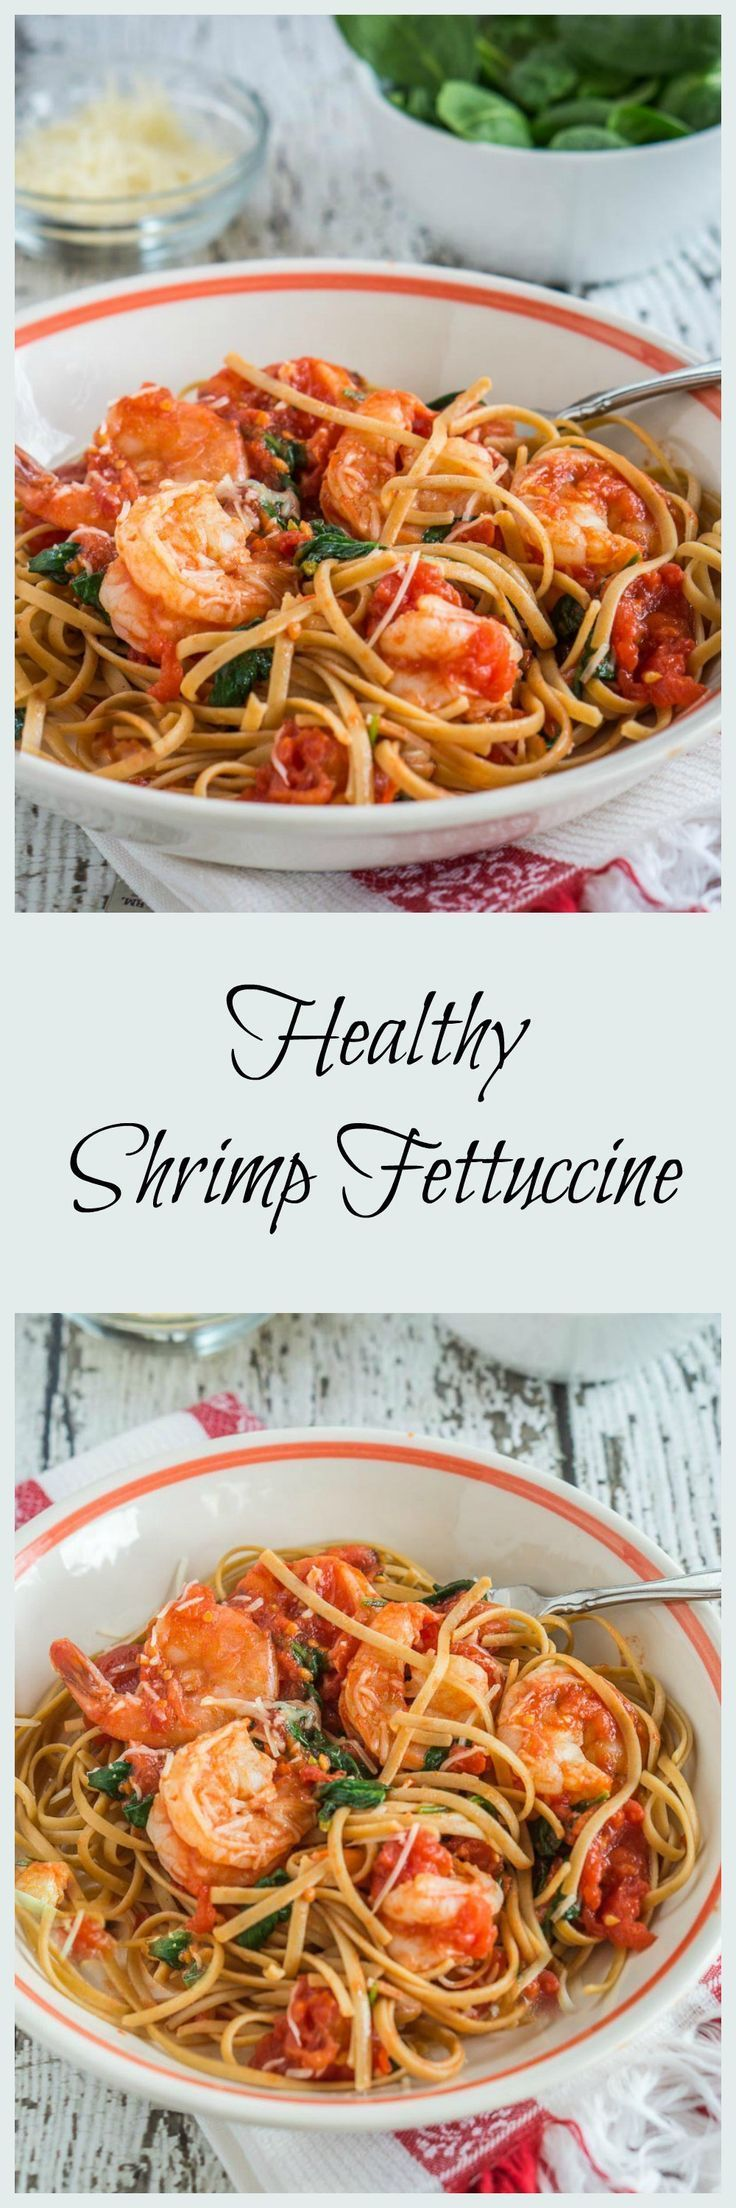 Healthy Shrimp Fettuccine can be on your table in 10 minutes. This recipe proves that you can put a dish on your table that is quick, healthy and delicious. | http://HostessAtHeart.com